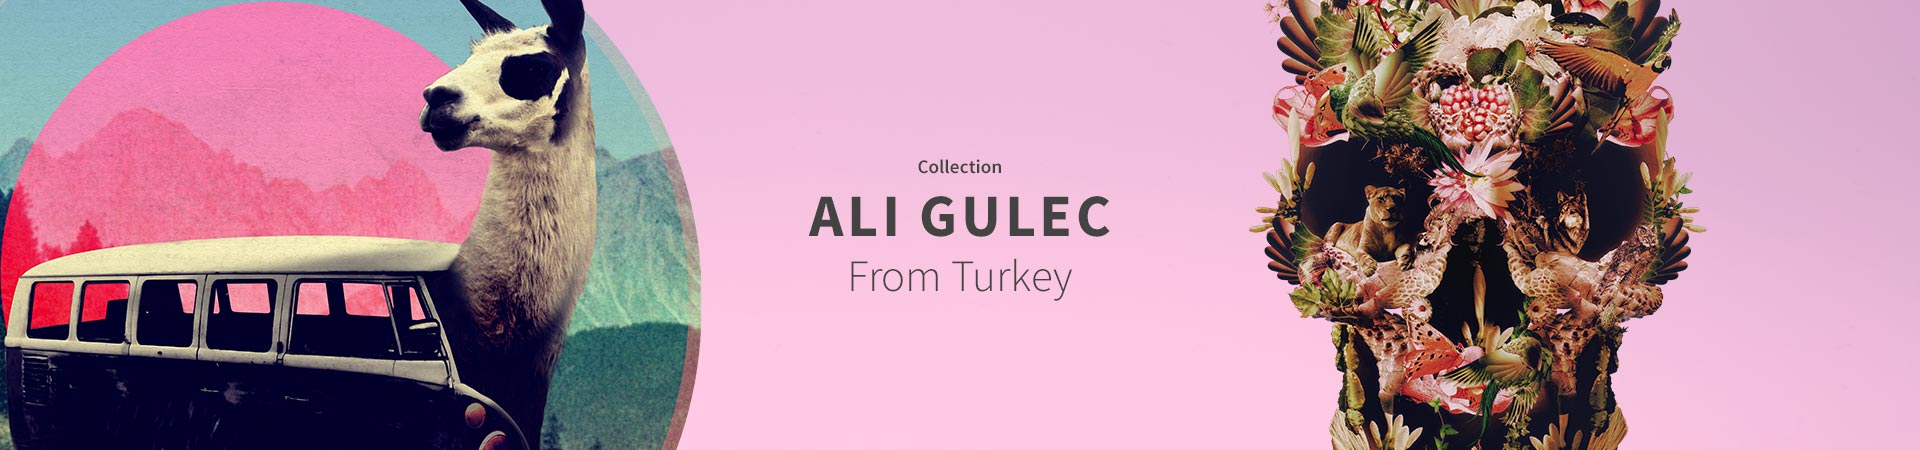 Collection Ali Gulec